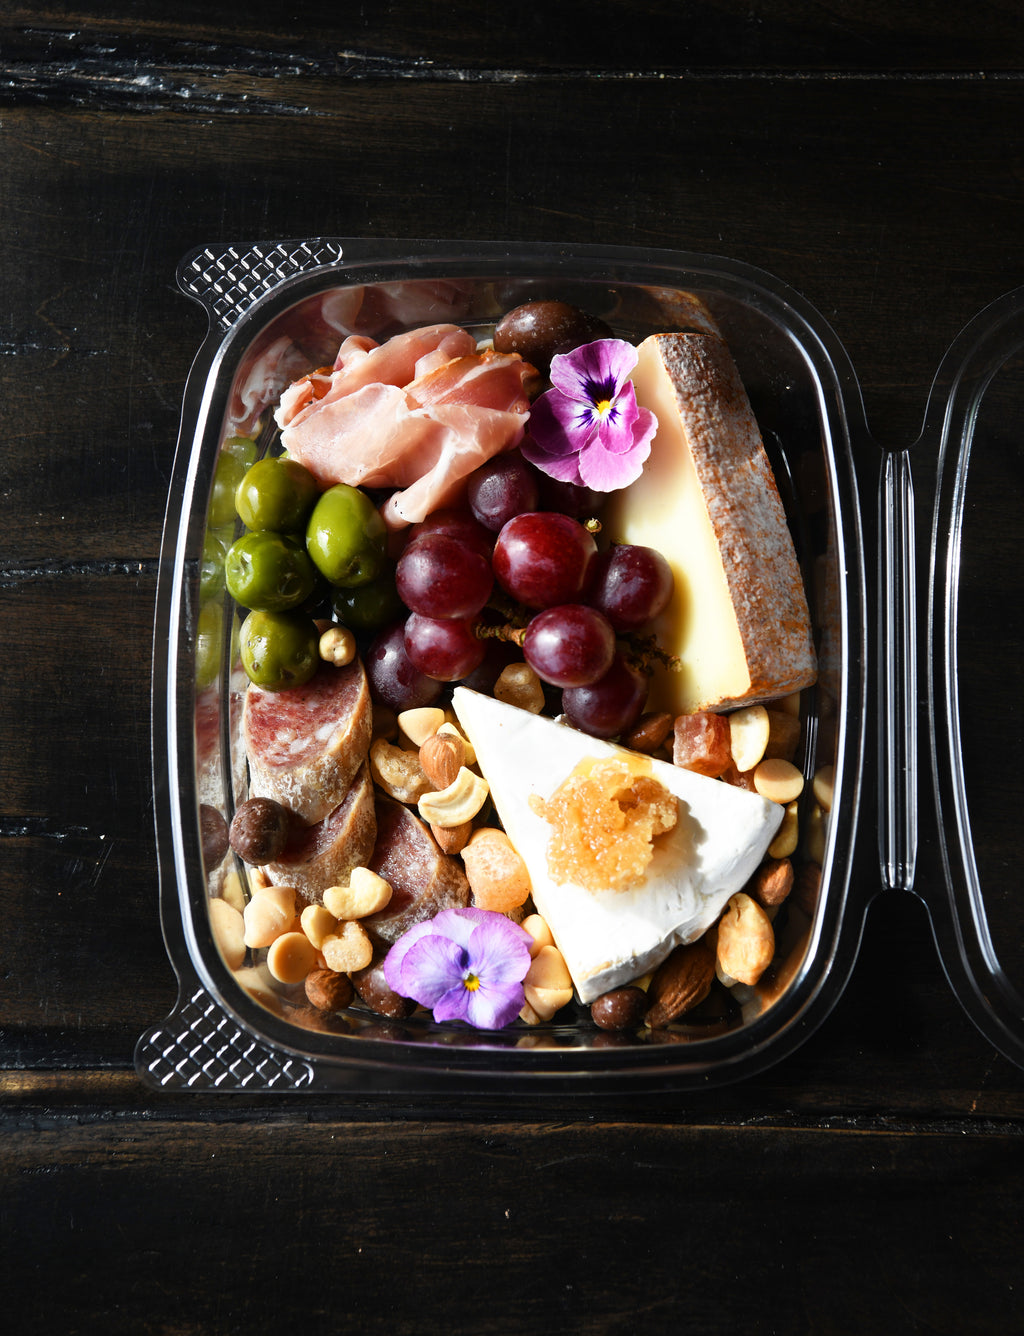 MINI CHARCUTERIE BOX FOR ONE